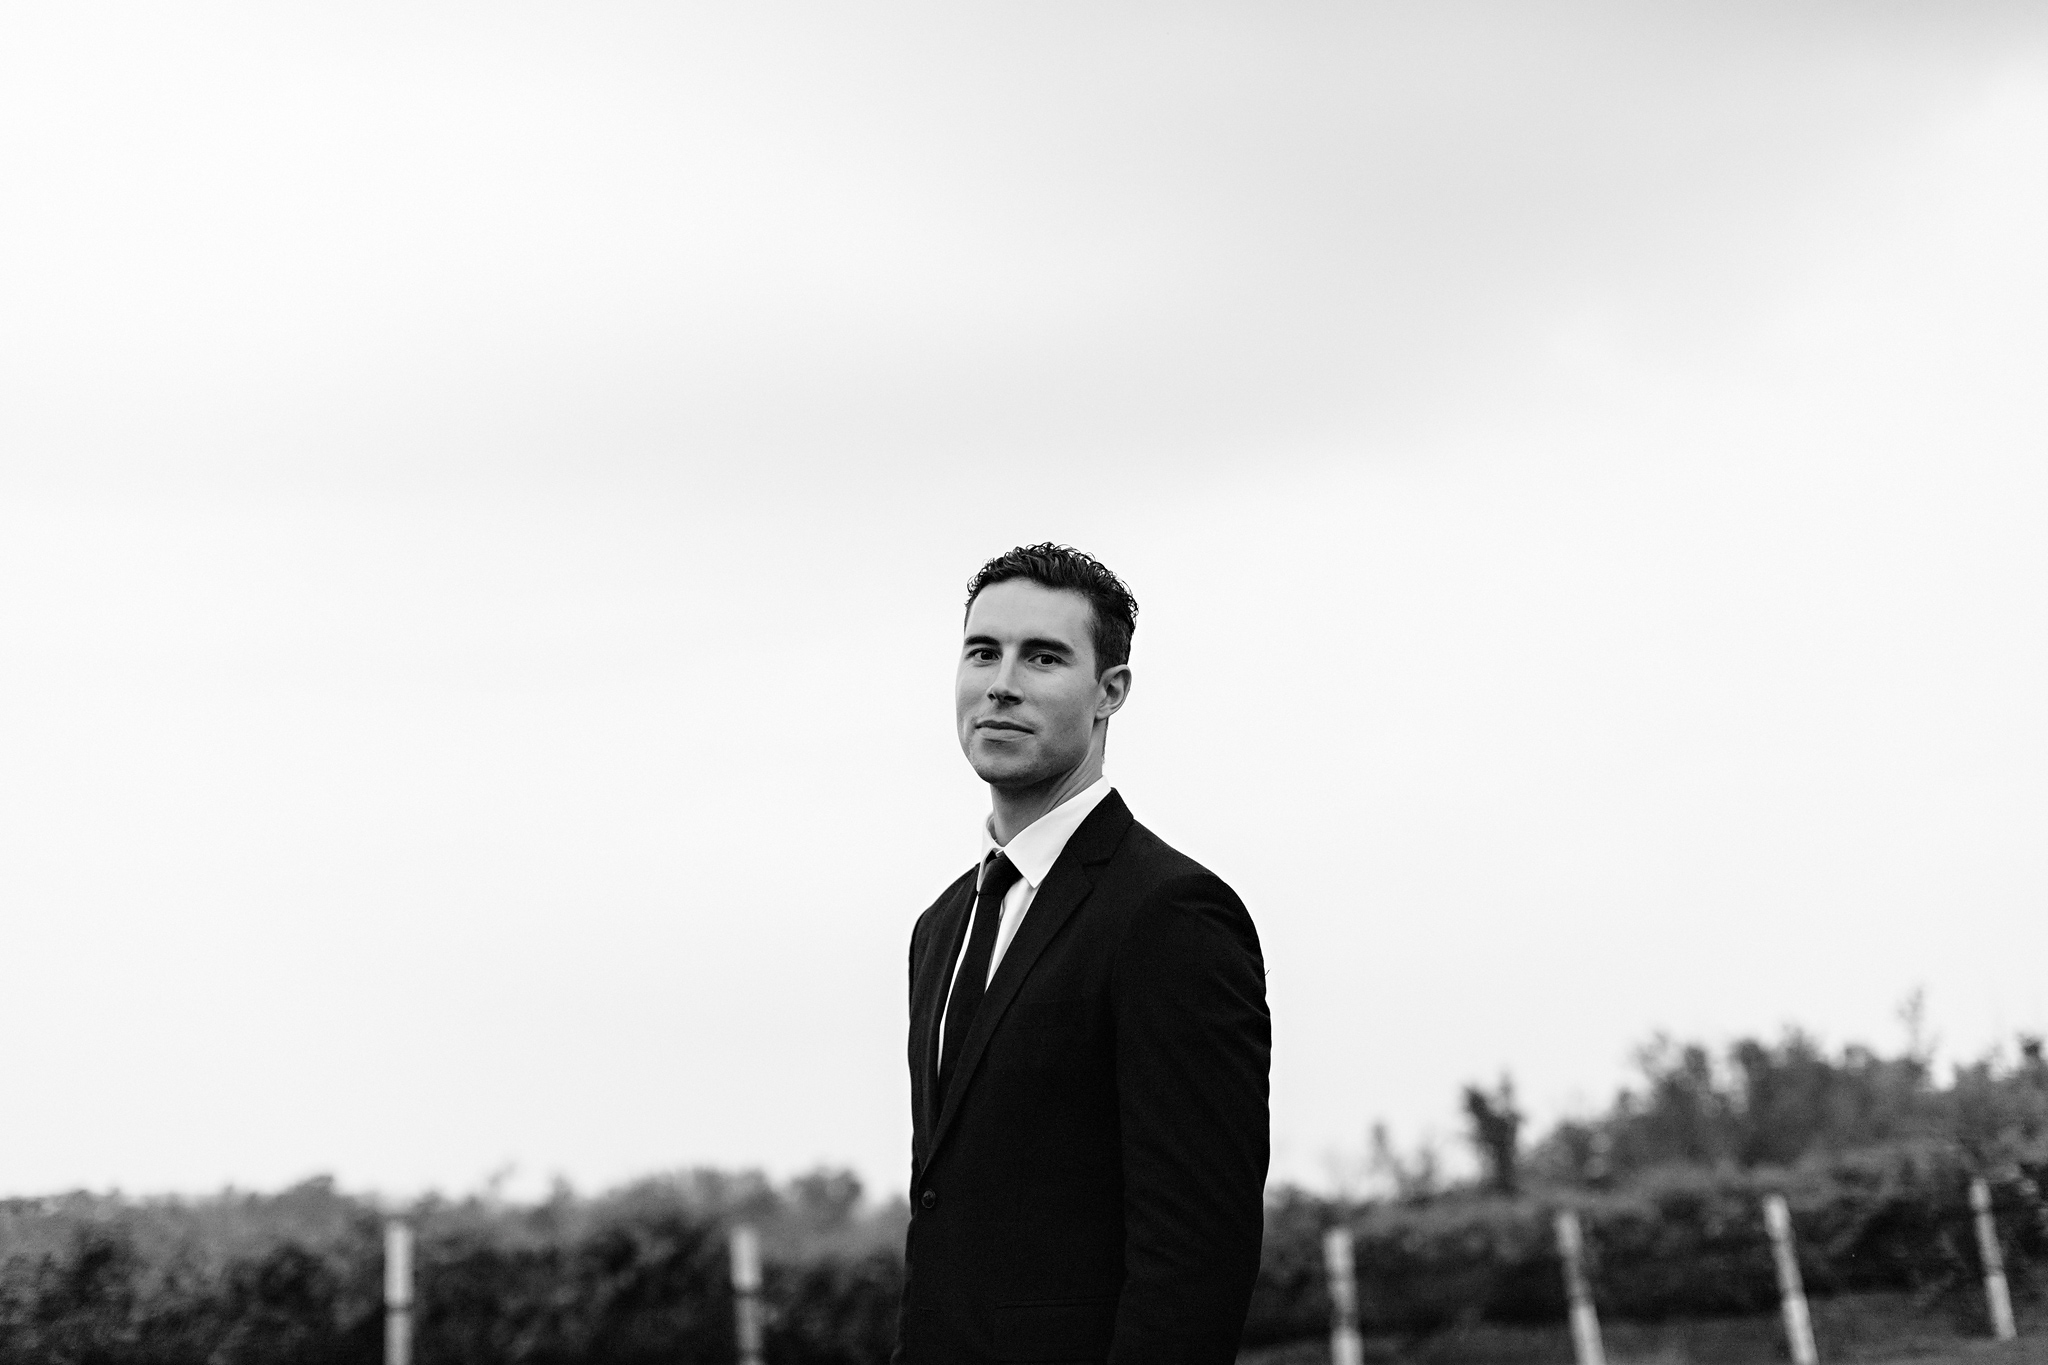 Handsome groom stands in the vineyards in classic black suit at